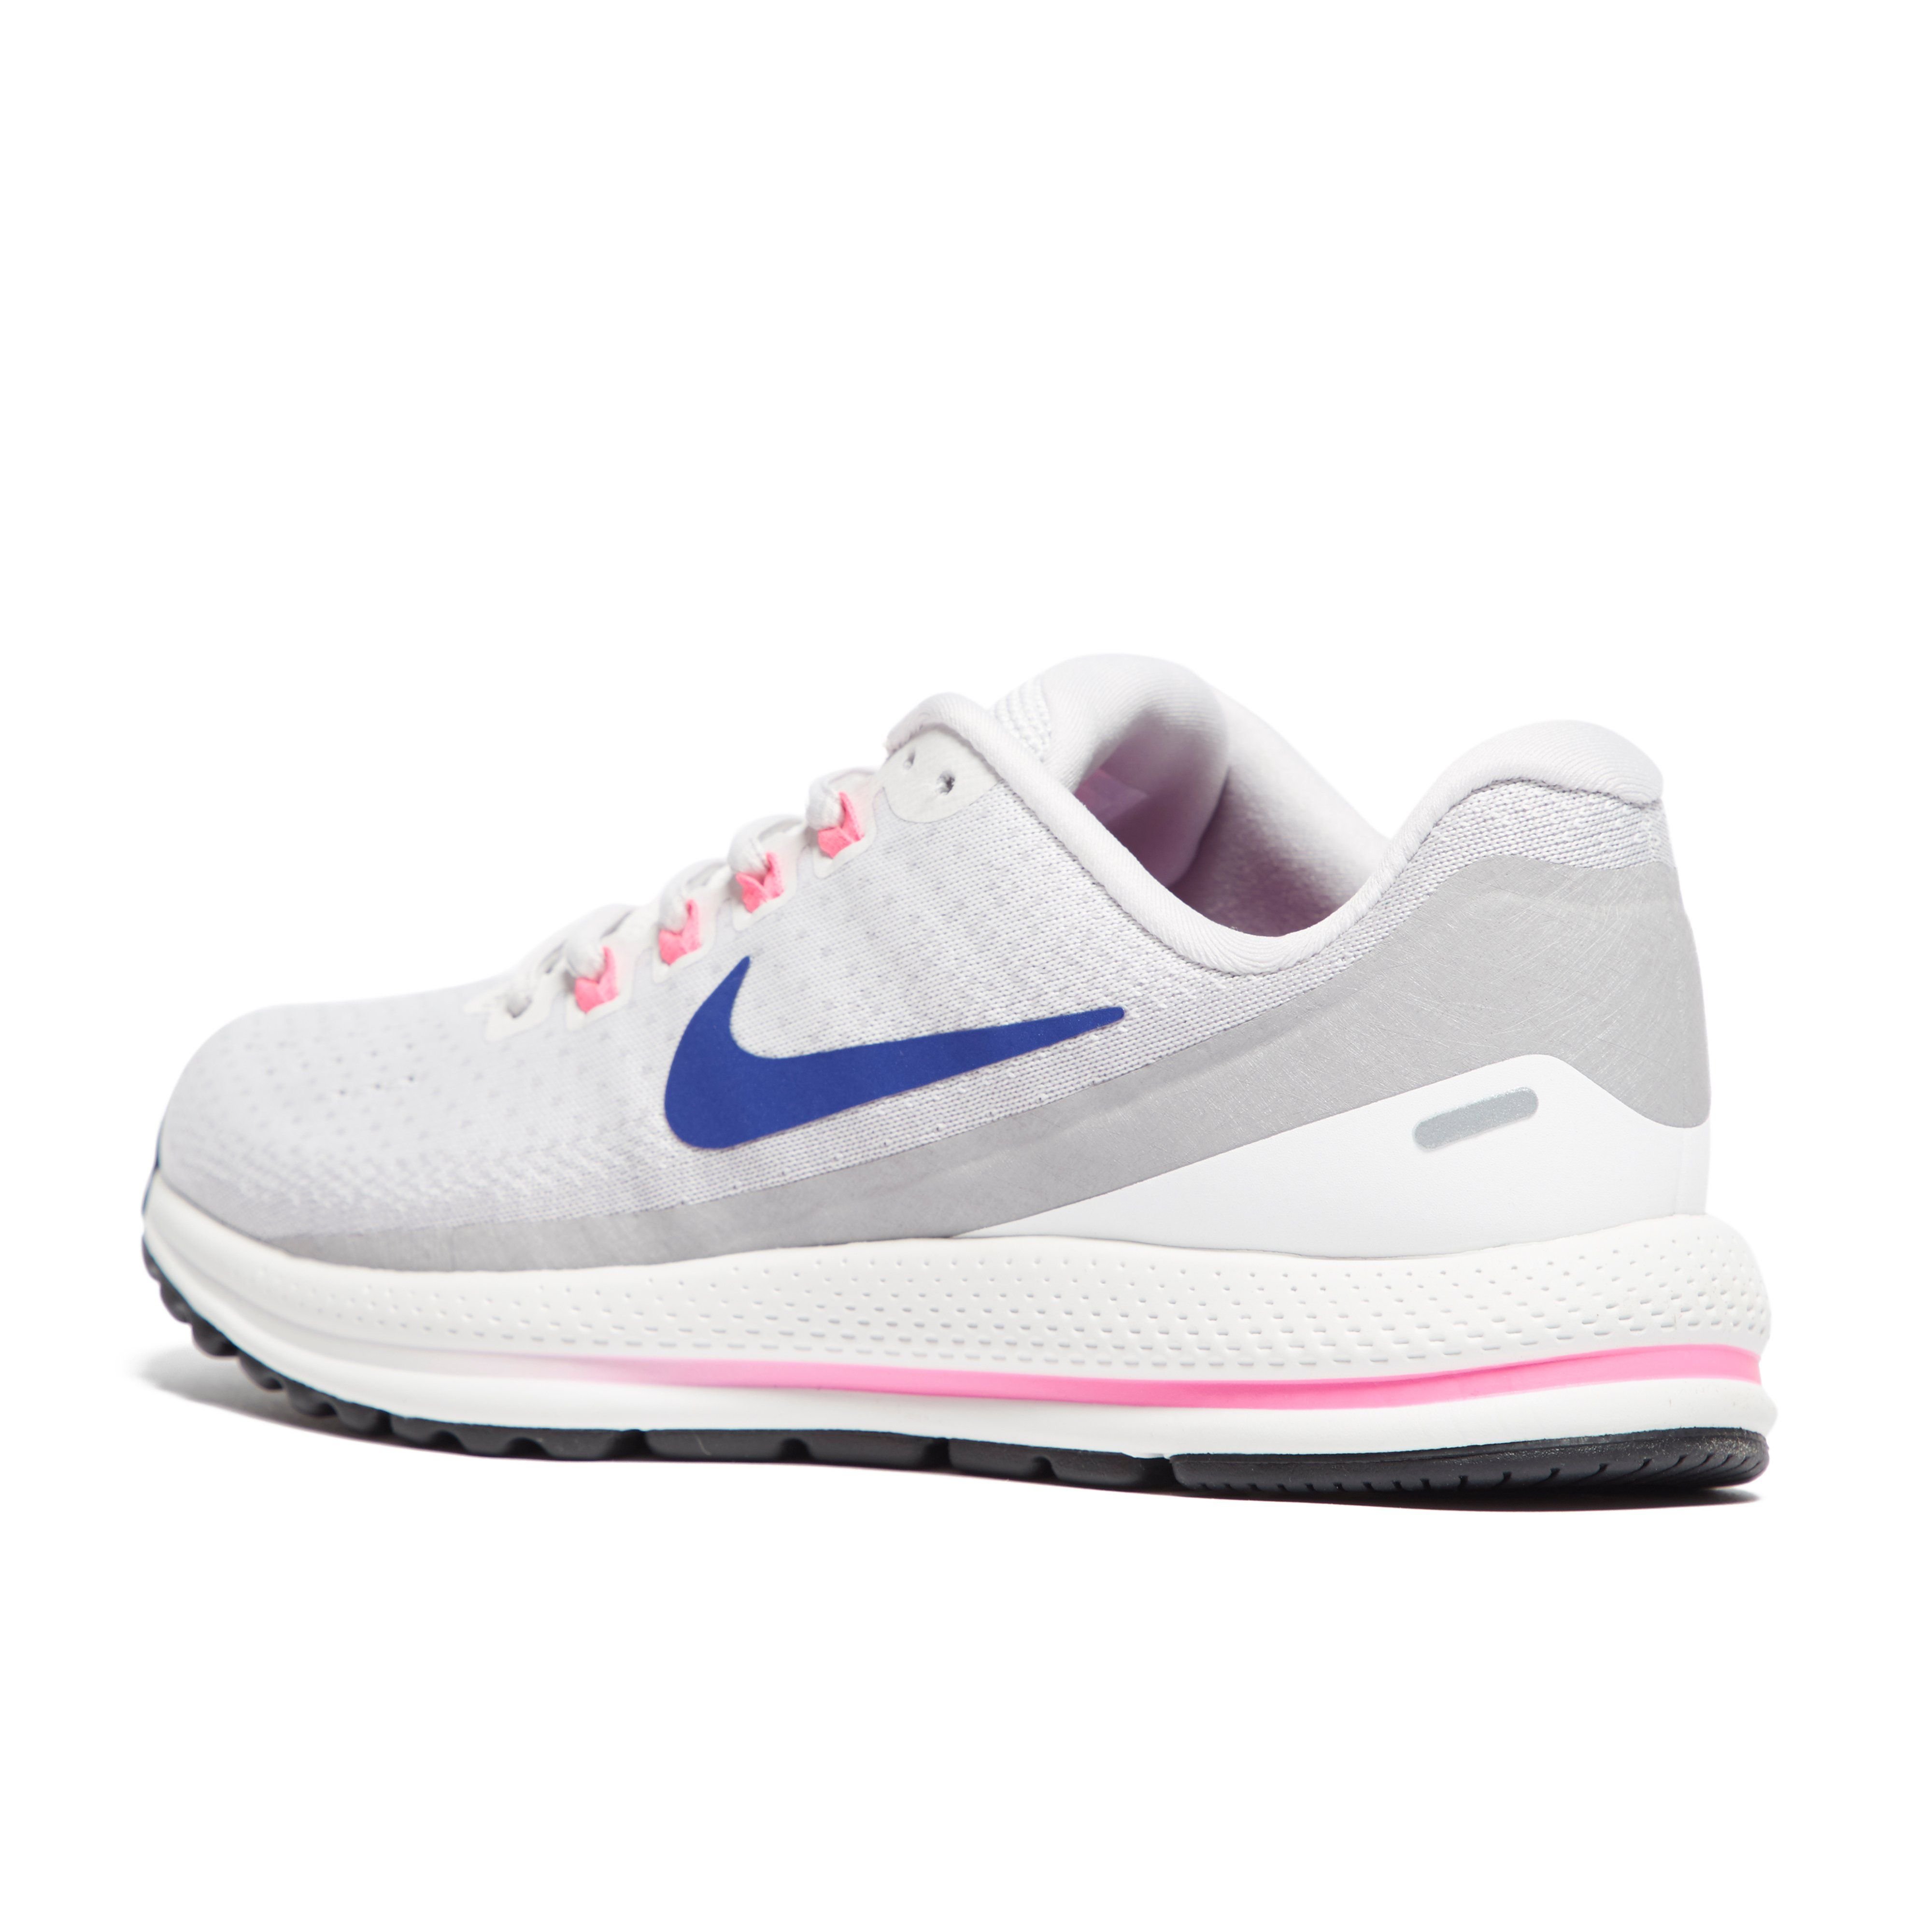 Nike Air Zoom Vomero 13 Women's Running Shoes